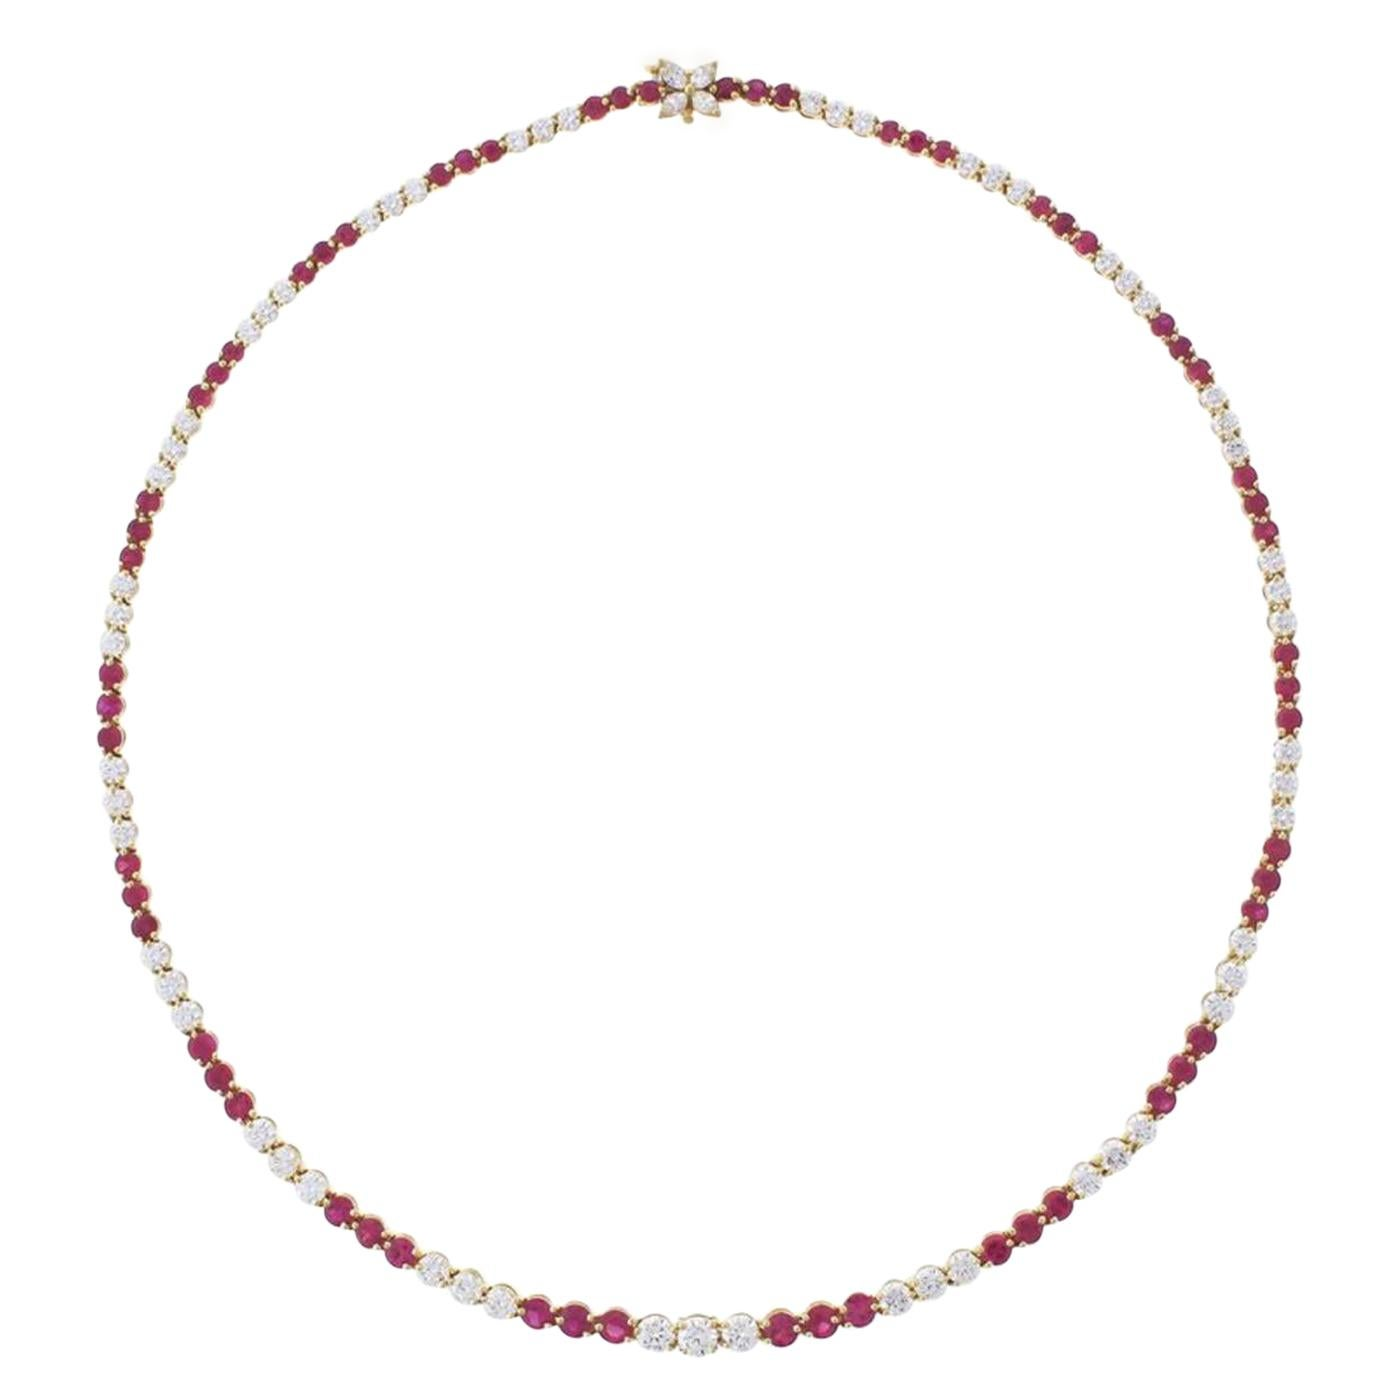 Tiffany & Co. Victoria Collection Ruby and Line Diamond Necklace